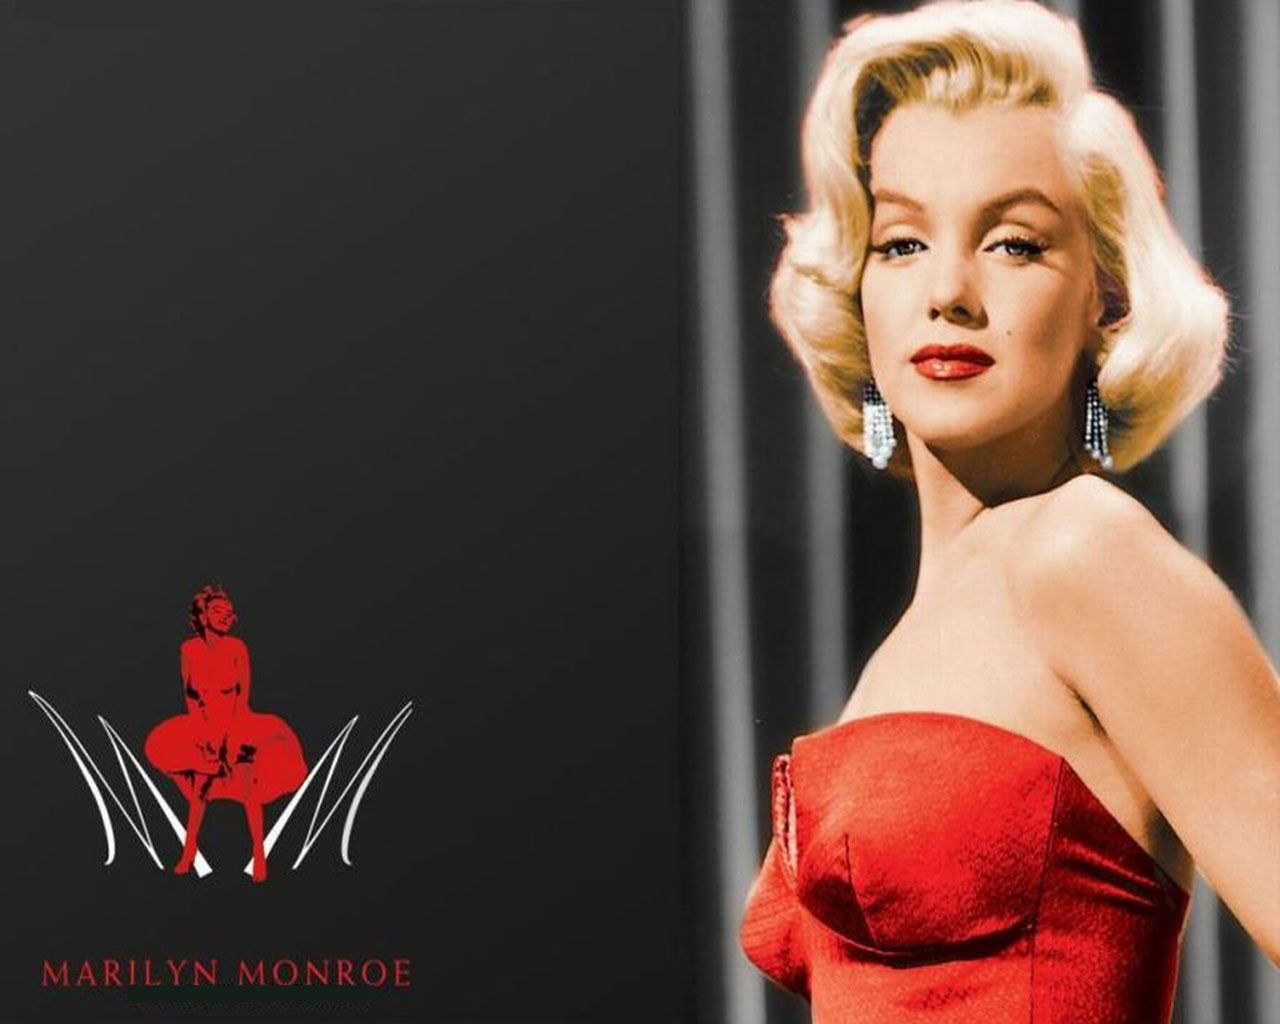 Marilyn monroe celebrity and movie pictures photos desktop marilyn monroe celebrity and movie pictures photos desktop wallpaper voltagebd Image collections